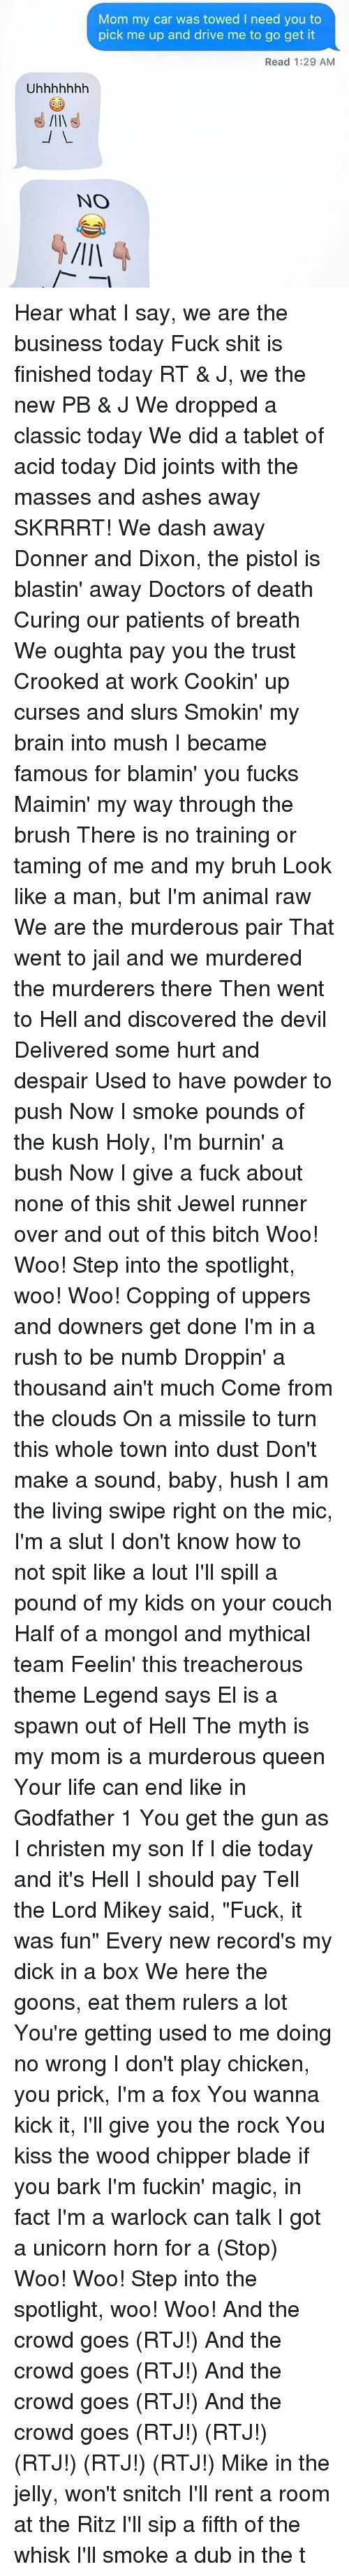 """Bitch, Blade, and Bruh: Mom my car was towed I need you to  pick me up and drive me to go get it  Read 1:29 AM  NO Hear what I say, we are the business today Fuck shit is finished today RT & J, we the new PB & J We dropped a classic today We did a tablet of acid today Did joints with the masses and ashes away SKRRRT! We dash away Donner and Dixon, the pistol is blastin' away Doctors of death Curing our patients of breath We oughta pay you the trust Crooked at work Cookin' up curses and slurs Smokin' my brain into mush I became famous for blamin' you fucks Maimin' my way through the brush There is no training or taming of me and my bruh Look like a man, but I'm animal raw We are the murderous pair That went to jail and we murdered the murderers there Then went to Hell and discovered the devil Delivered some hurt and despair Used to have powder to push Now I smoke pounds of the kush Holy, I'm burnin' a bush Now I give a fuck about none of this shit Jewel runner over and out of this bitch Woo! Woo! Step into the spotlight, woo! Woo! Copping of uppers and downers get done I'm in a rush to be numb Droppin' a thousand ain't much Come from the clouds On a missile to turn this whole town into dust Don't make a sound, baby, hush I am the living swipe right on the mic, I'm a slut I don't know how to not spit like a lout I'll spill a pound of my kids on your couch Half of a mongol and mythical team Feelin' this treacherous theme Legend says El is a spawn out of Hell The myth is my mom is a murderous queen Your life can end like in Godfather 1 You get the gun as I christen my son If I die today and it's Hell I should pay Tell the Lord Mikey said, """"Fuck, it was fun"""" Every new record's my dick in a box We here the goons, eat them rulers a lot You're getting used to me doing no wrong I don't play chicken, you prick, I'm a fox You wanna kick it, I'll give you the rock You kiss the wood chipper blade if you bark I'm fuckin' magic, in fact I'm a warlock can talk I got a unicorn horn """